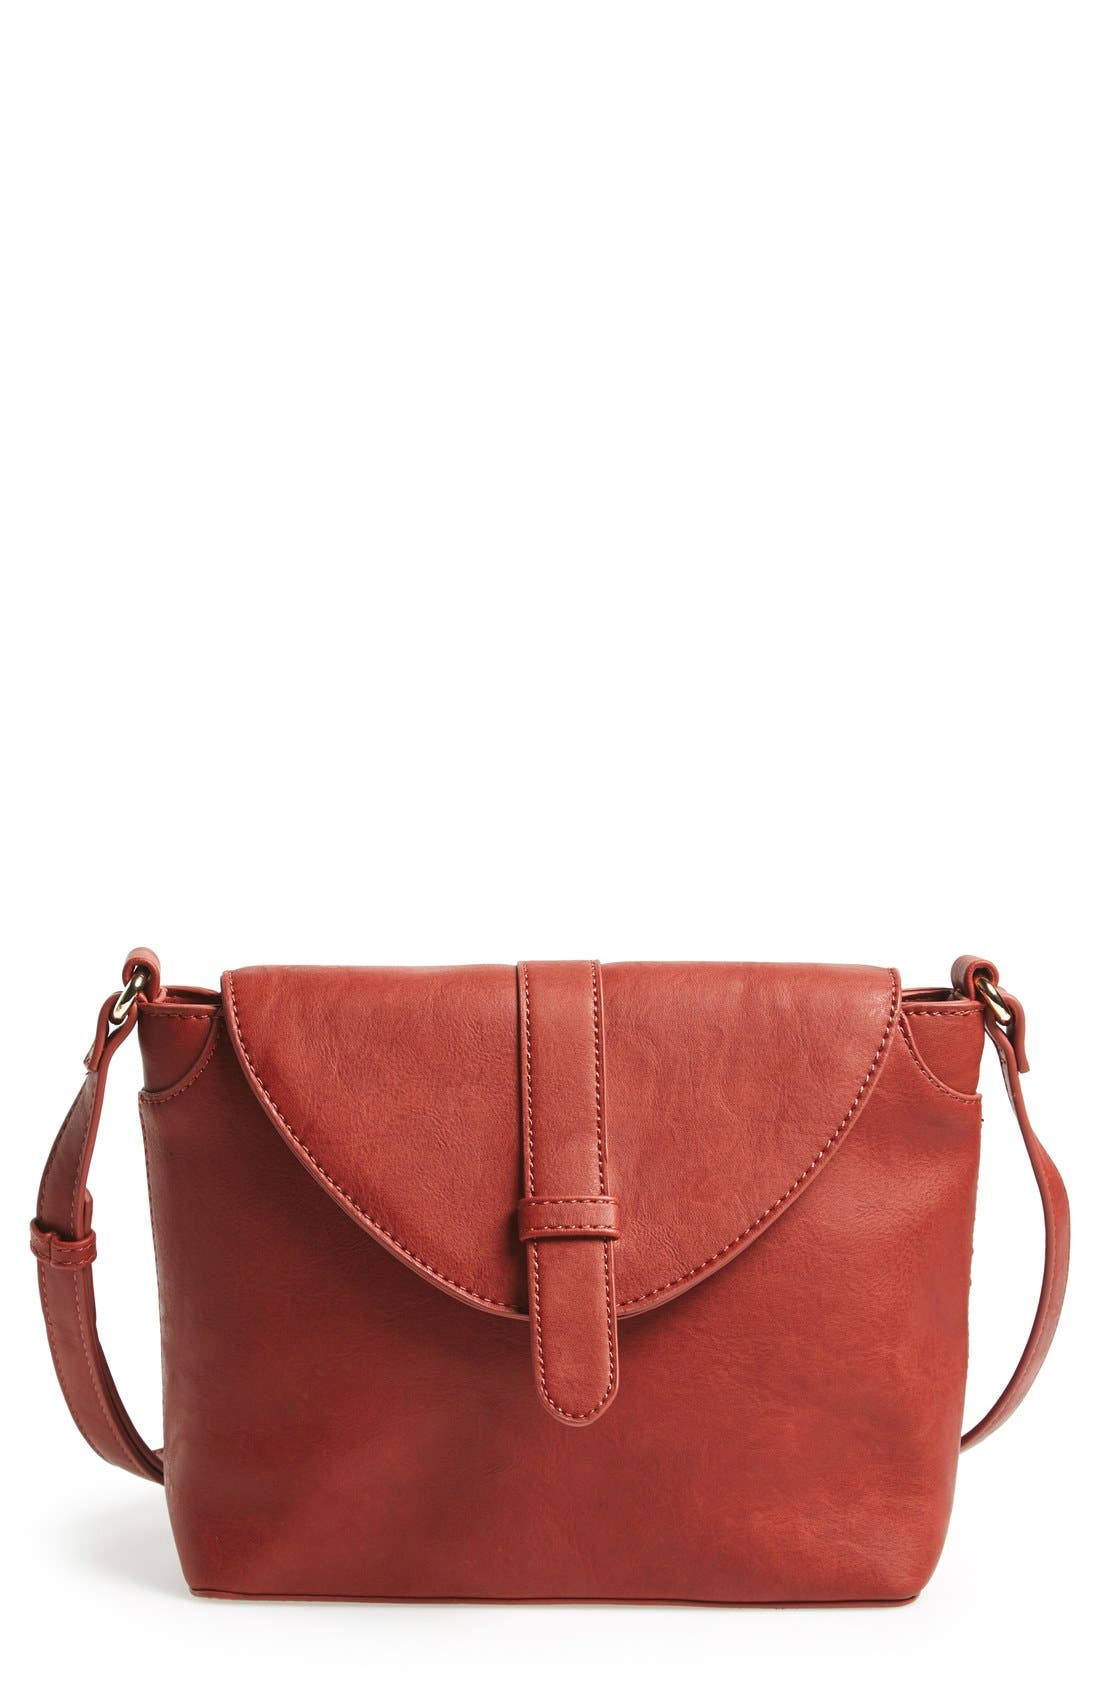 Alternate Image 1 Selected - Sole Society 'Brady' Faux Leather Crossbody Bag